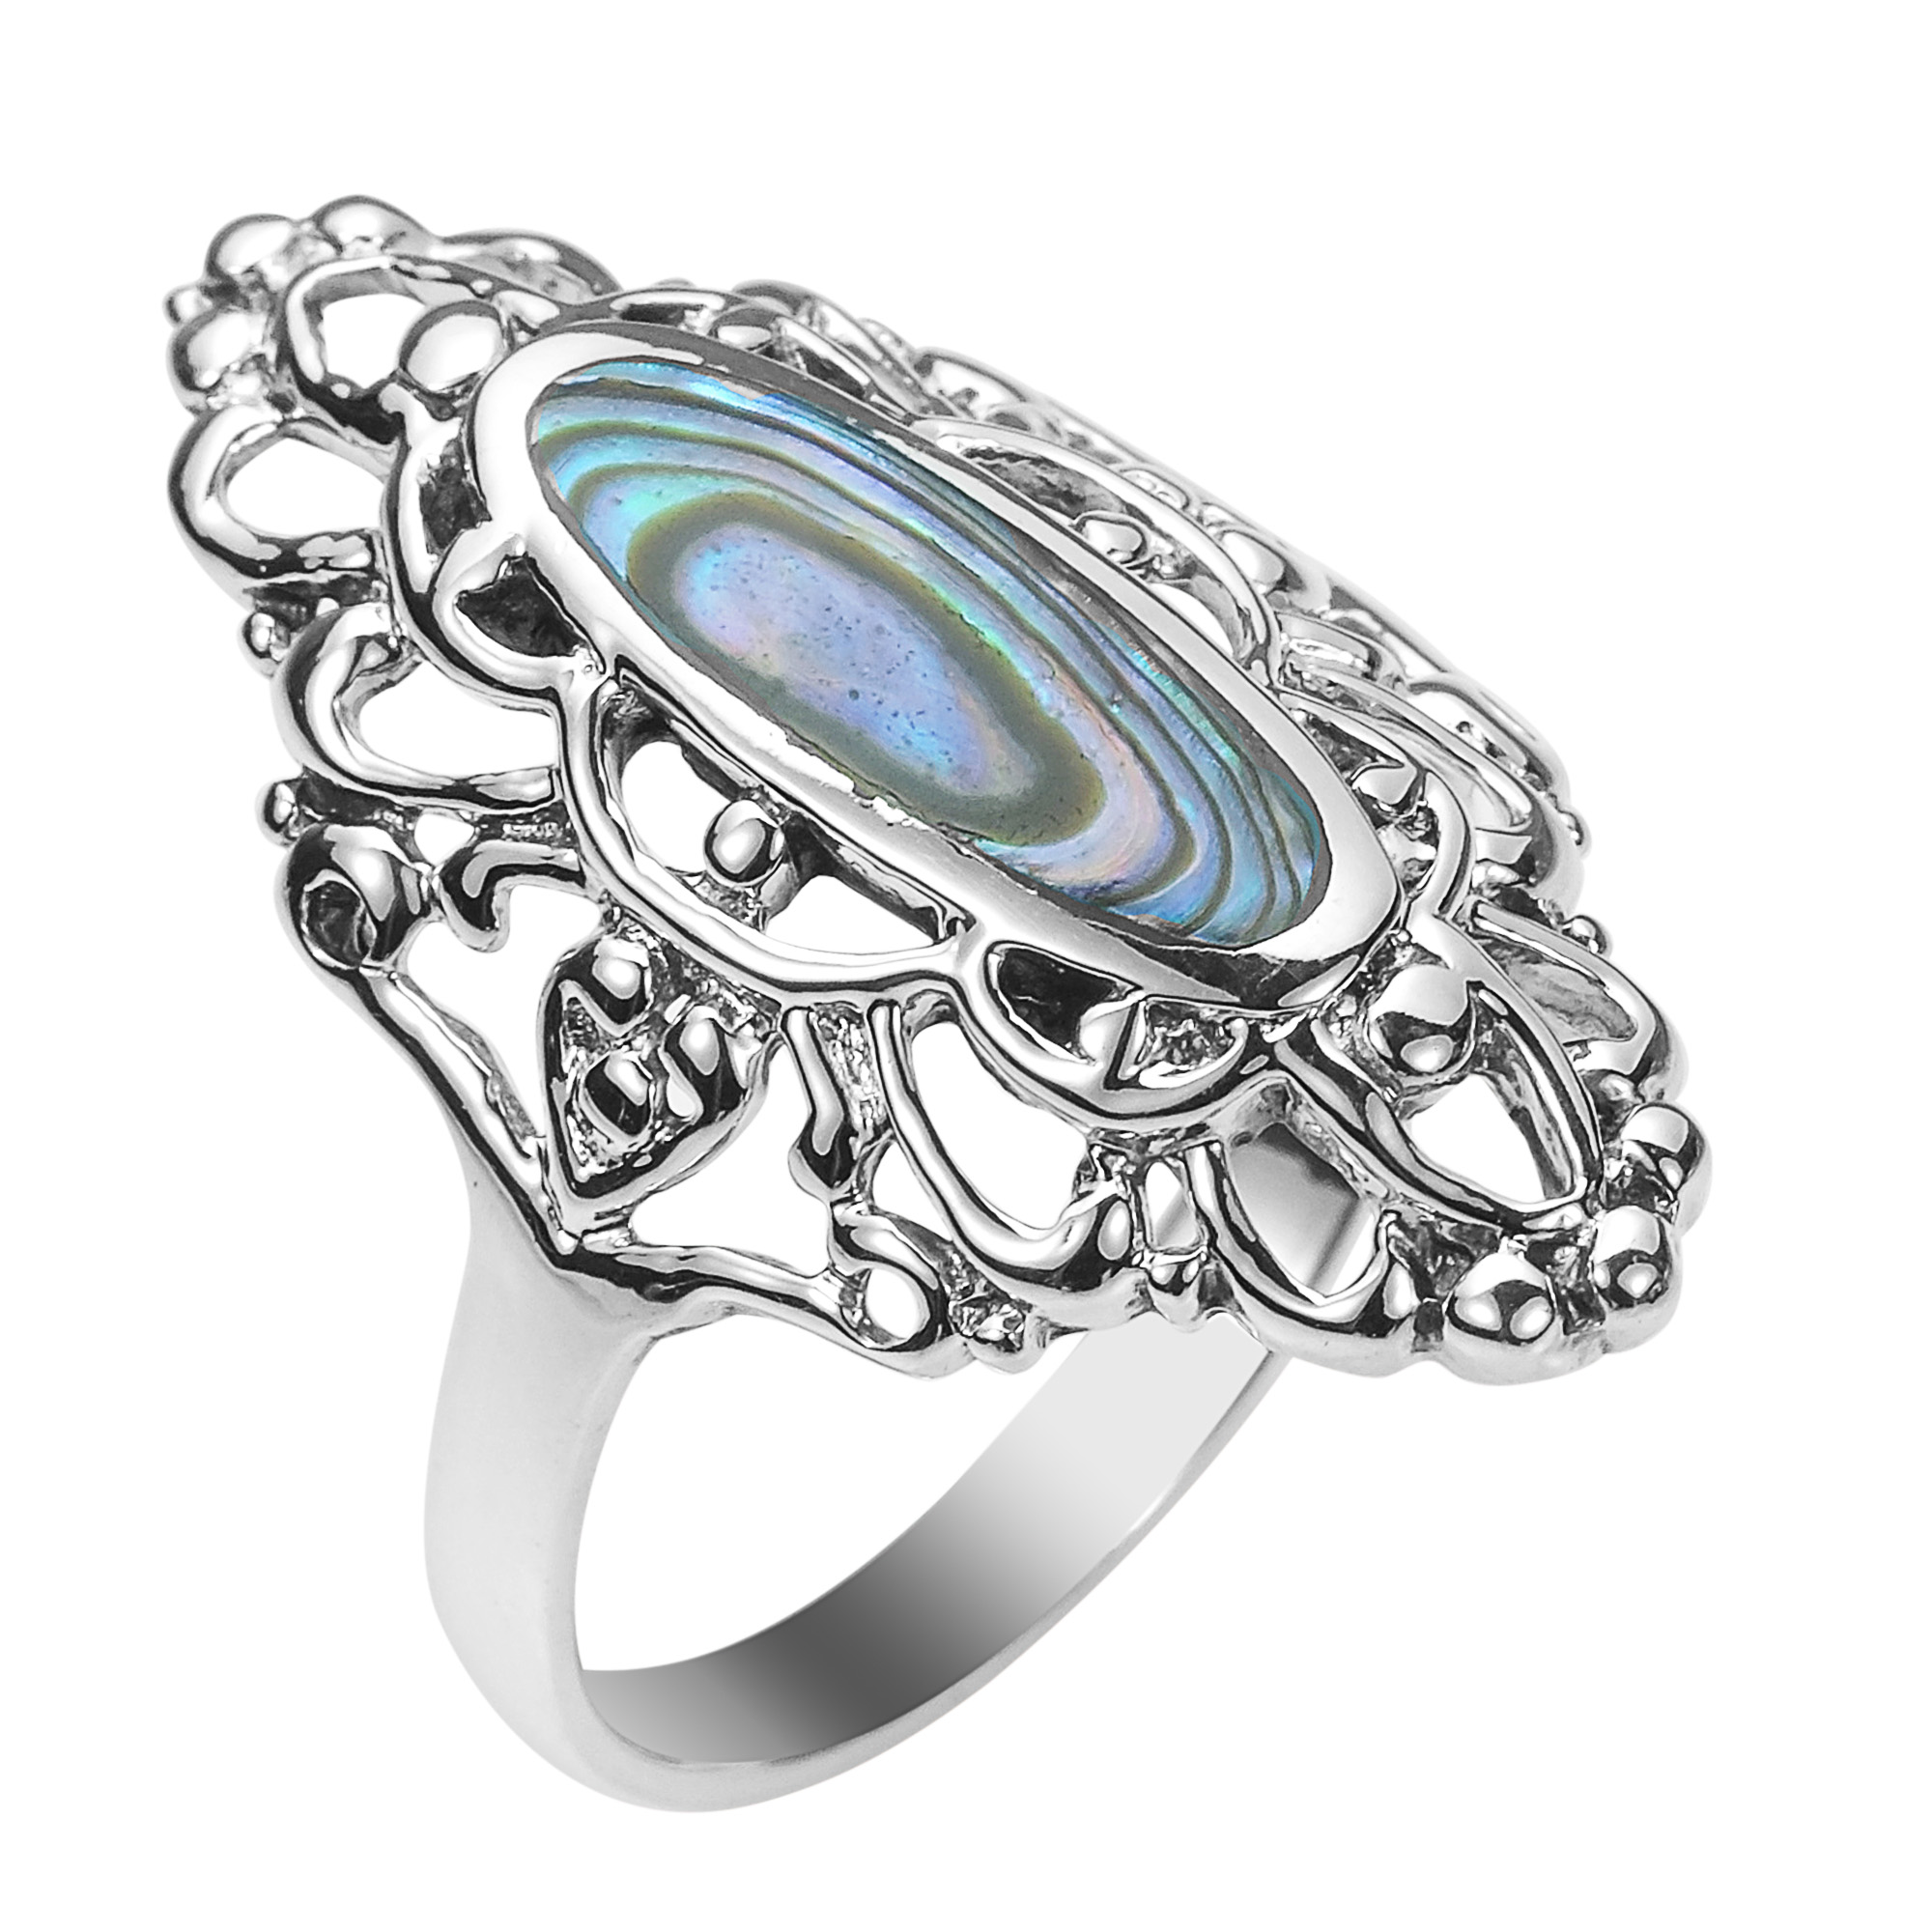 wedding mens titanium and wood makani manufacturer products heirloom hawaii accessories wholesaler jewelry rings ring hawaiian koa abalone